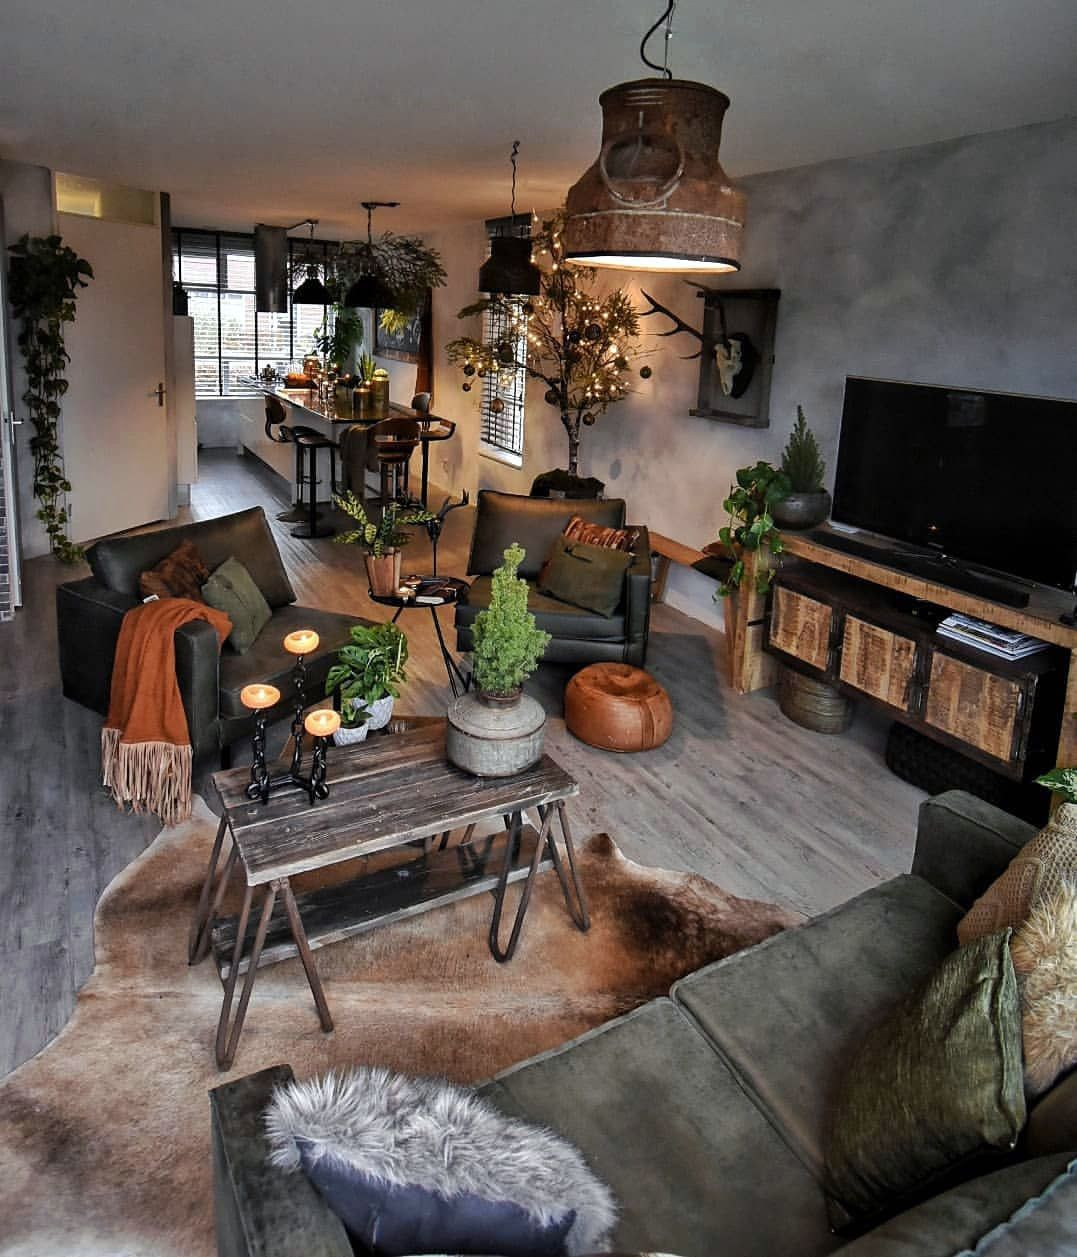 Tiny residing space ideas just how to adorn a cosy and also small resting snug, lobby or even area is part of Living room entertainment - If you are trying to find small sitting room ideas, take inspiration from our showroom of wonderful small area styles to open the capacity of your portable livingroom  When you are remodeling, amo…